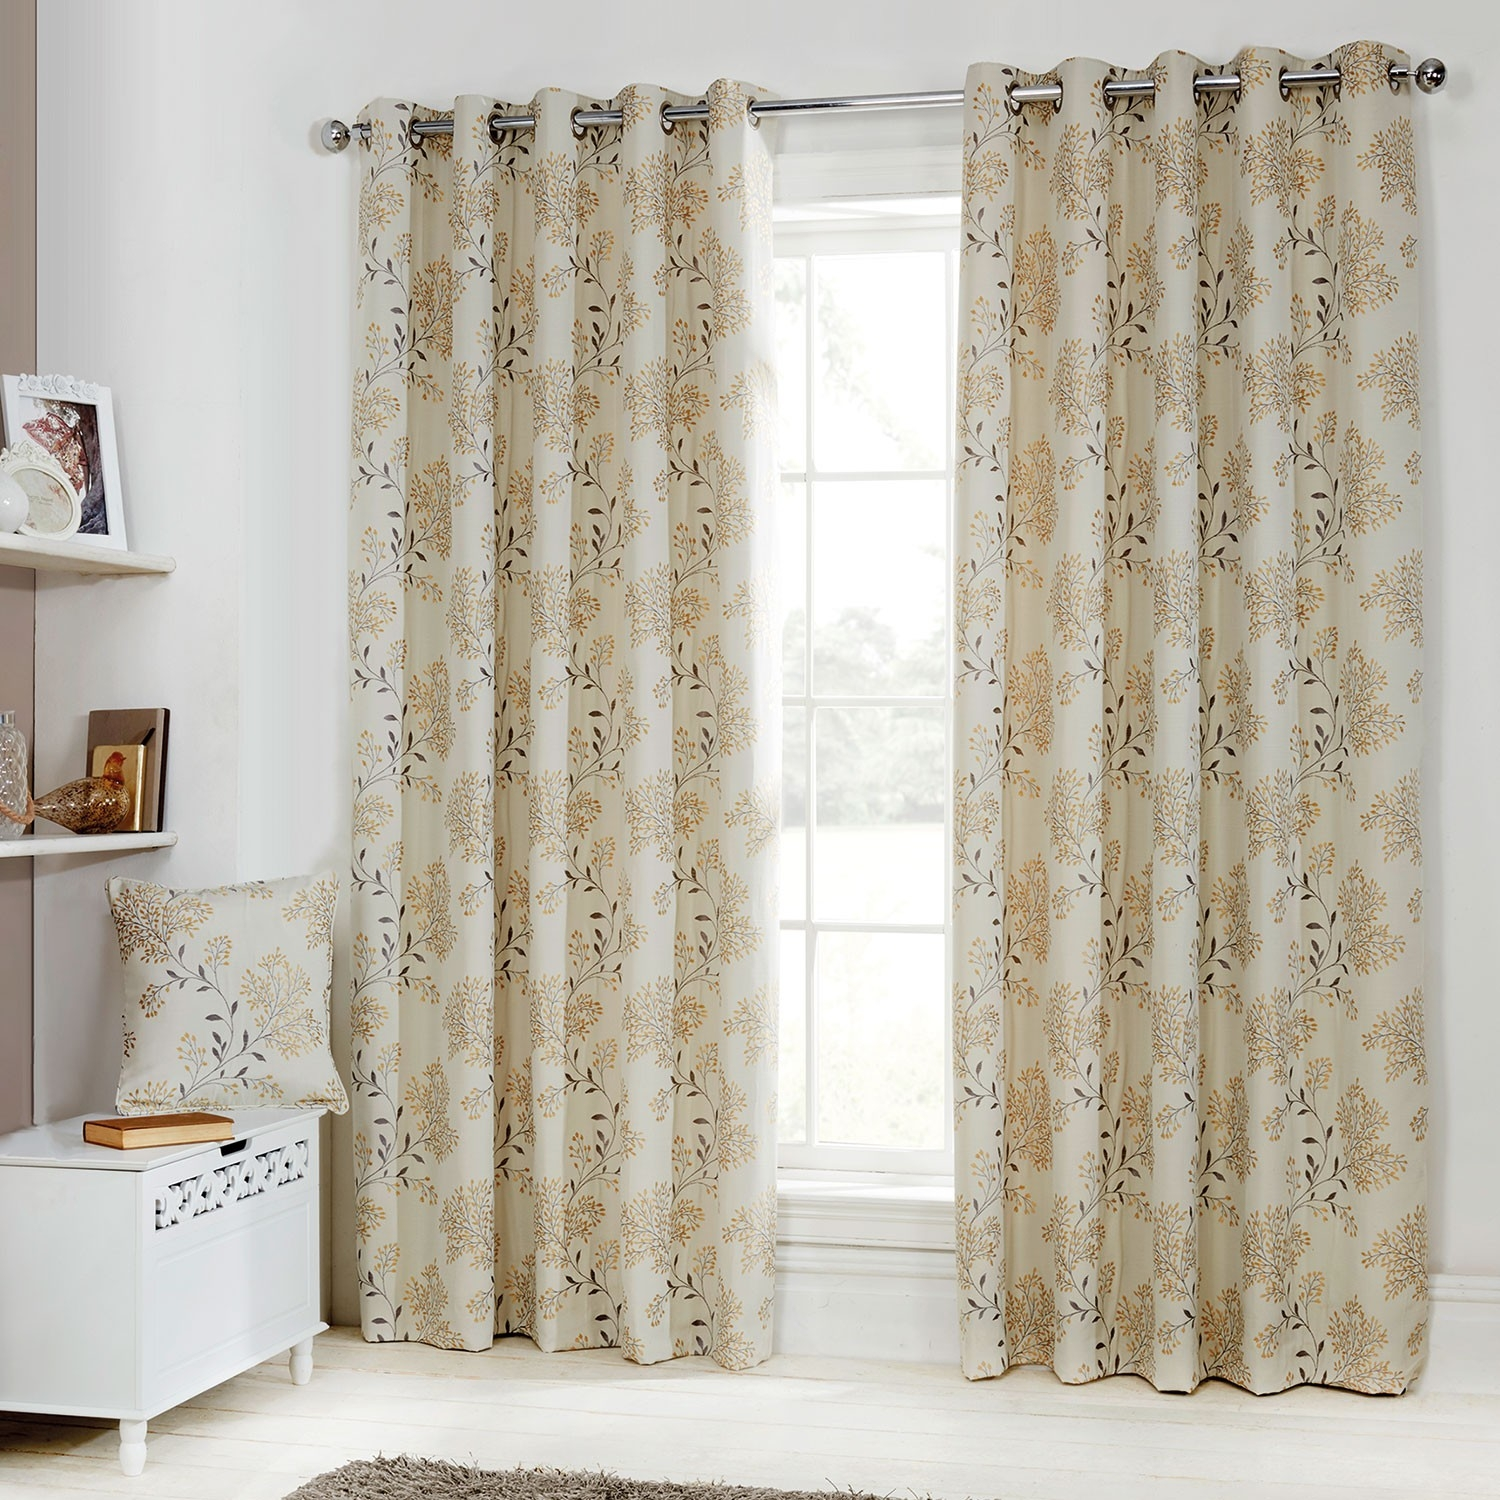 Eden Gold Floral Jacquard Luxury Eyelet Curtains Pair Julian In Cream And Gold Eyelet Curtains (Image 10 of 15)